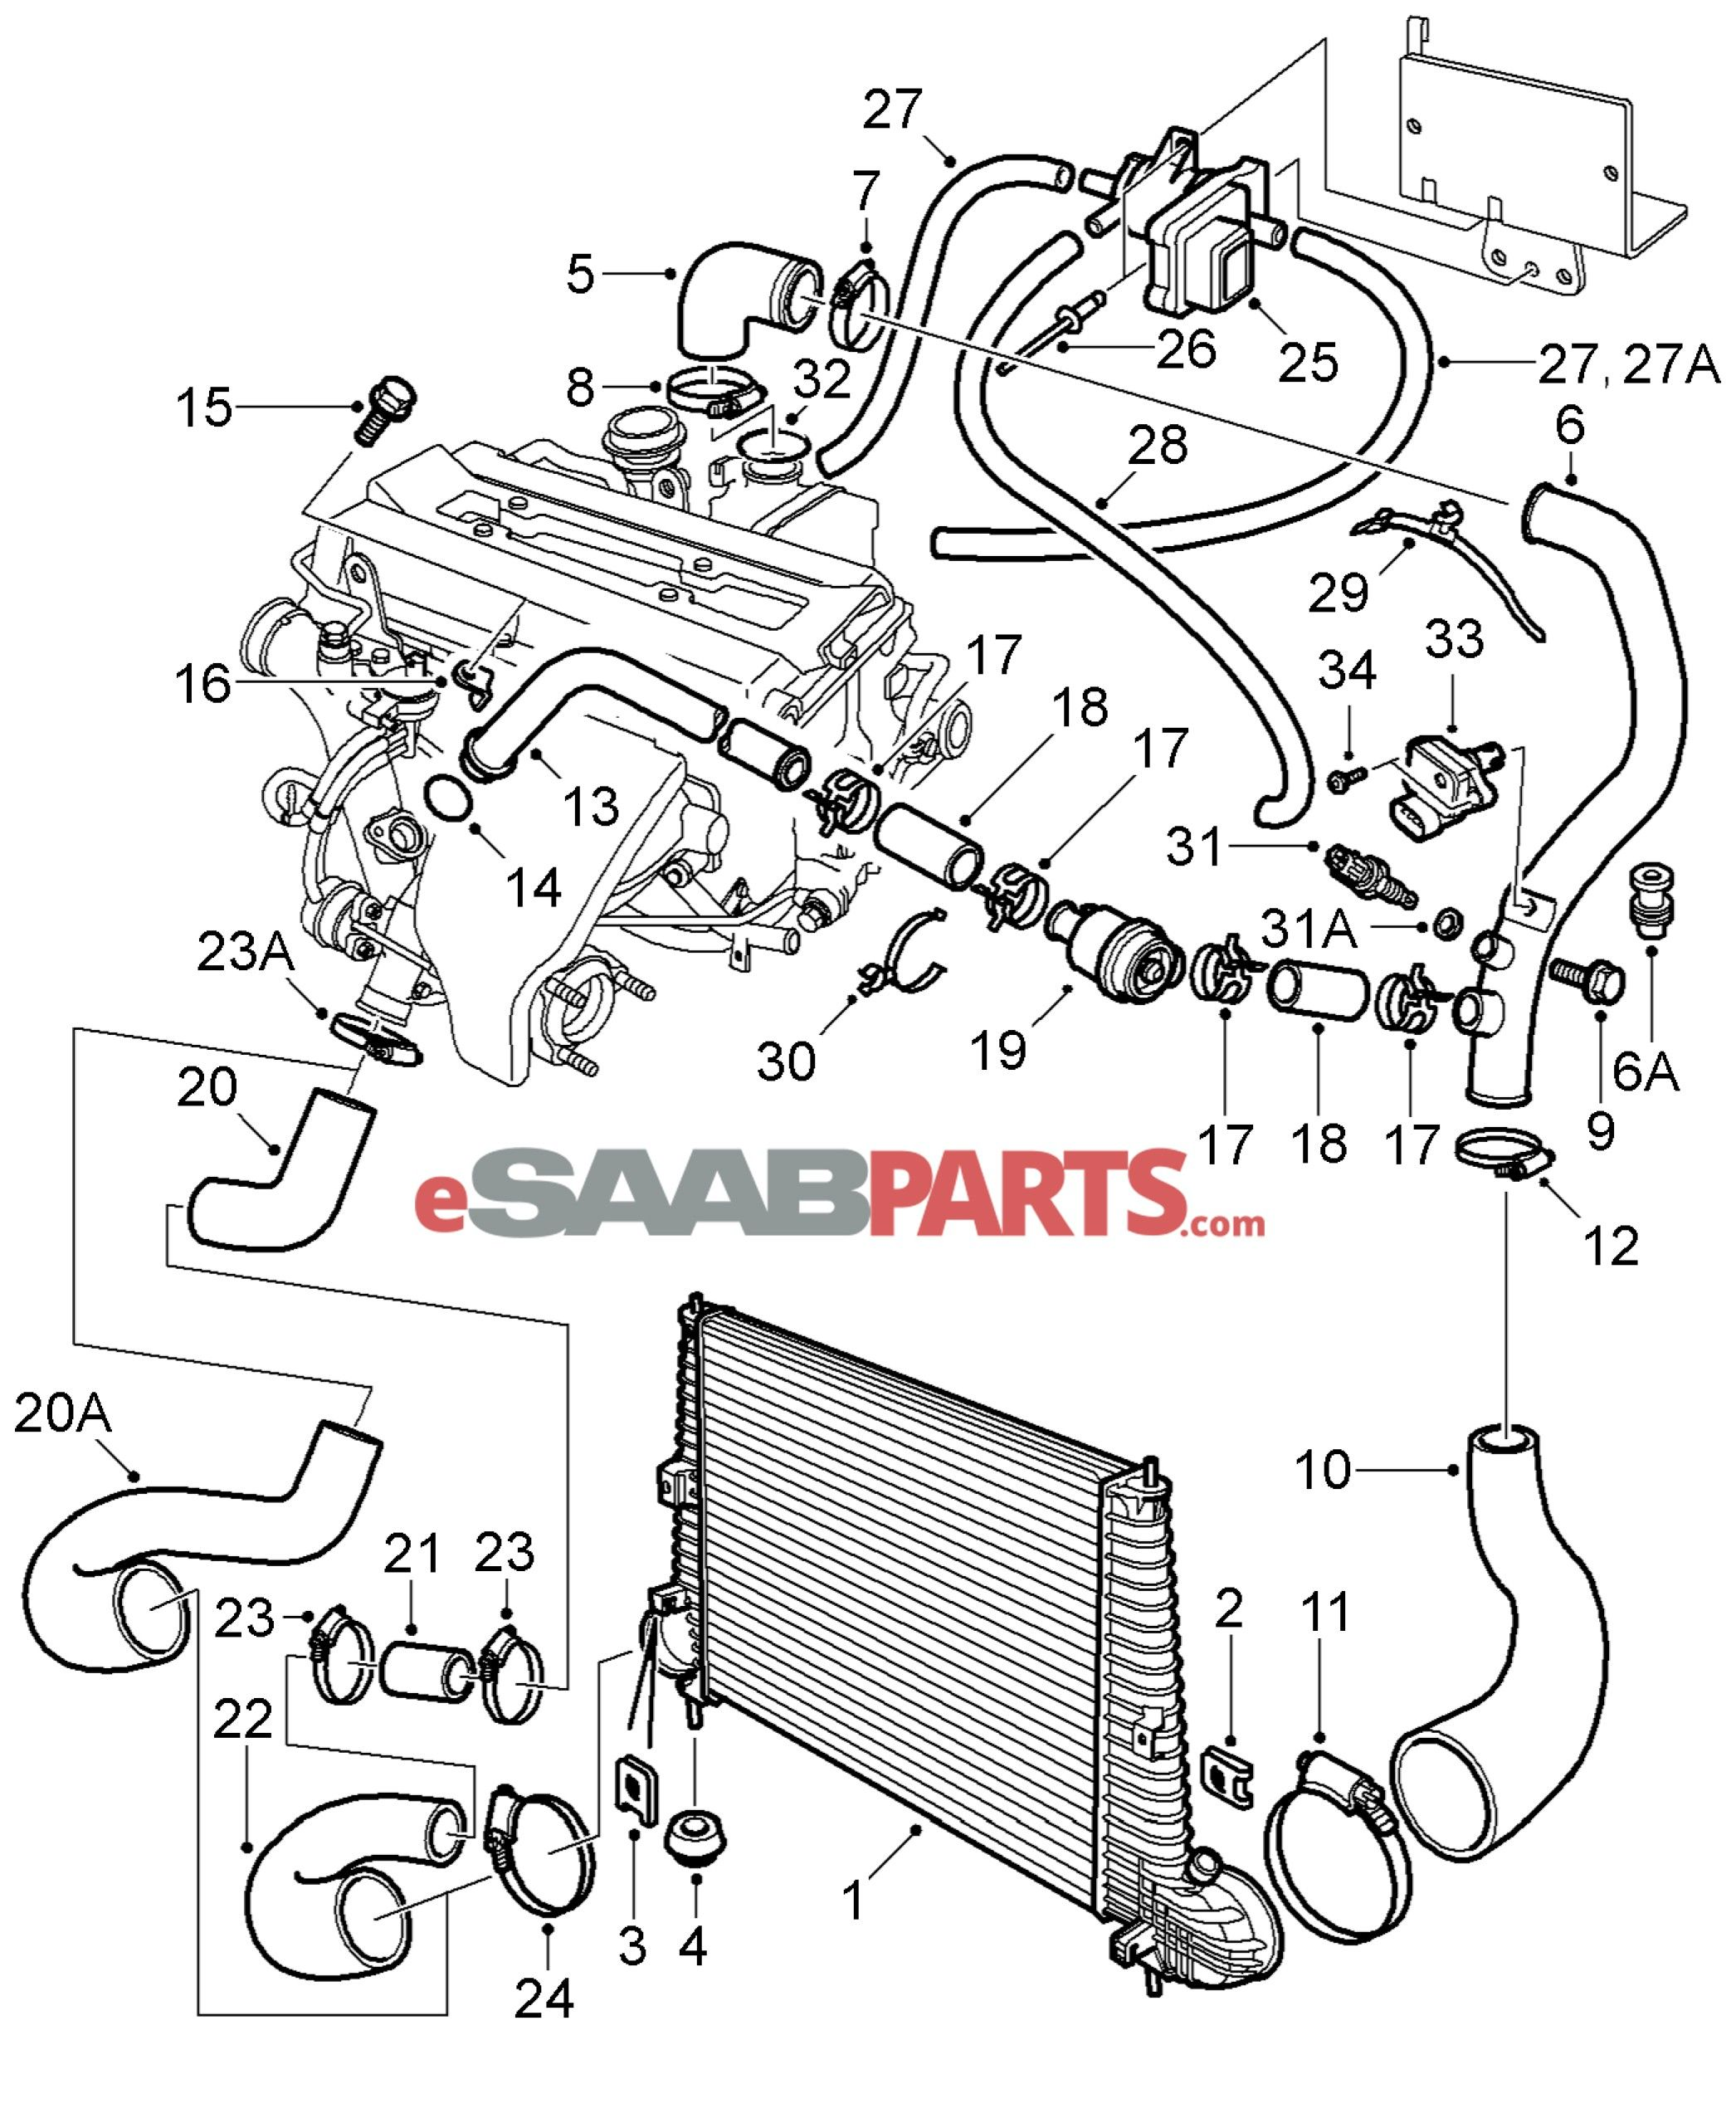 medium resolution of saab 9 5 engine diagram 2006 saab 9 3 cooling system diagram 2000 2000 saab 9 3 engine diagrams